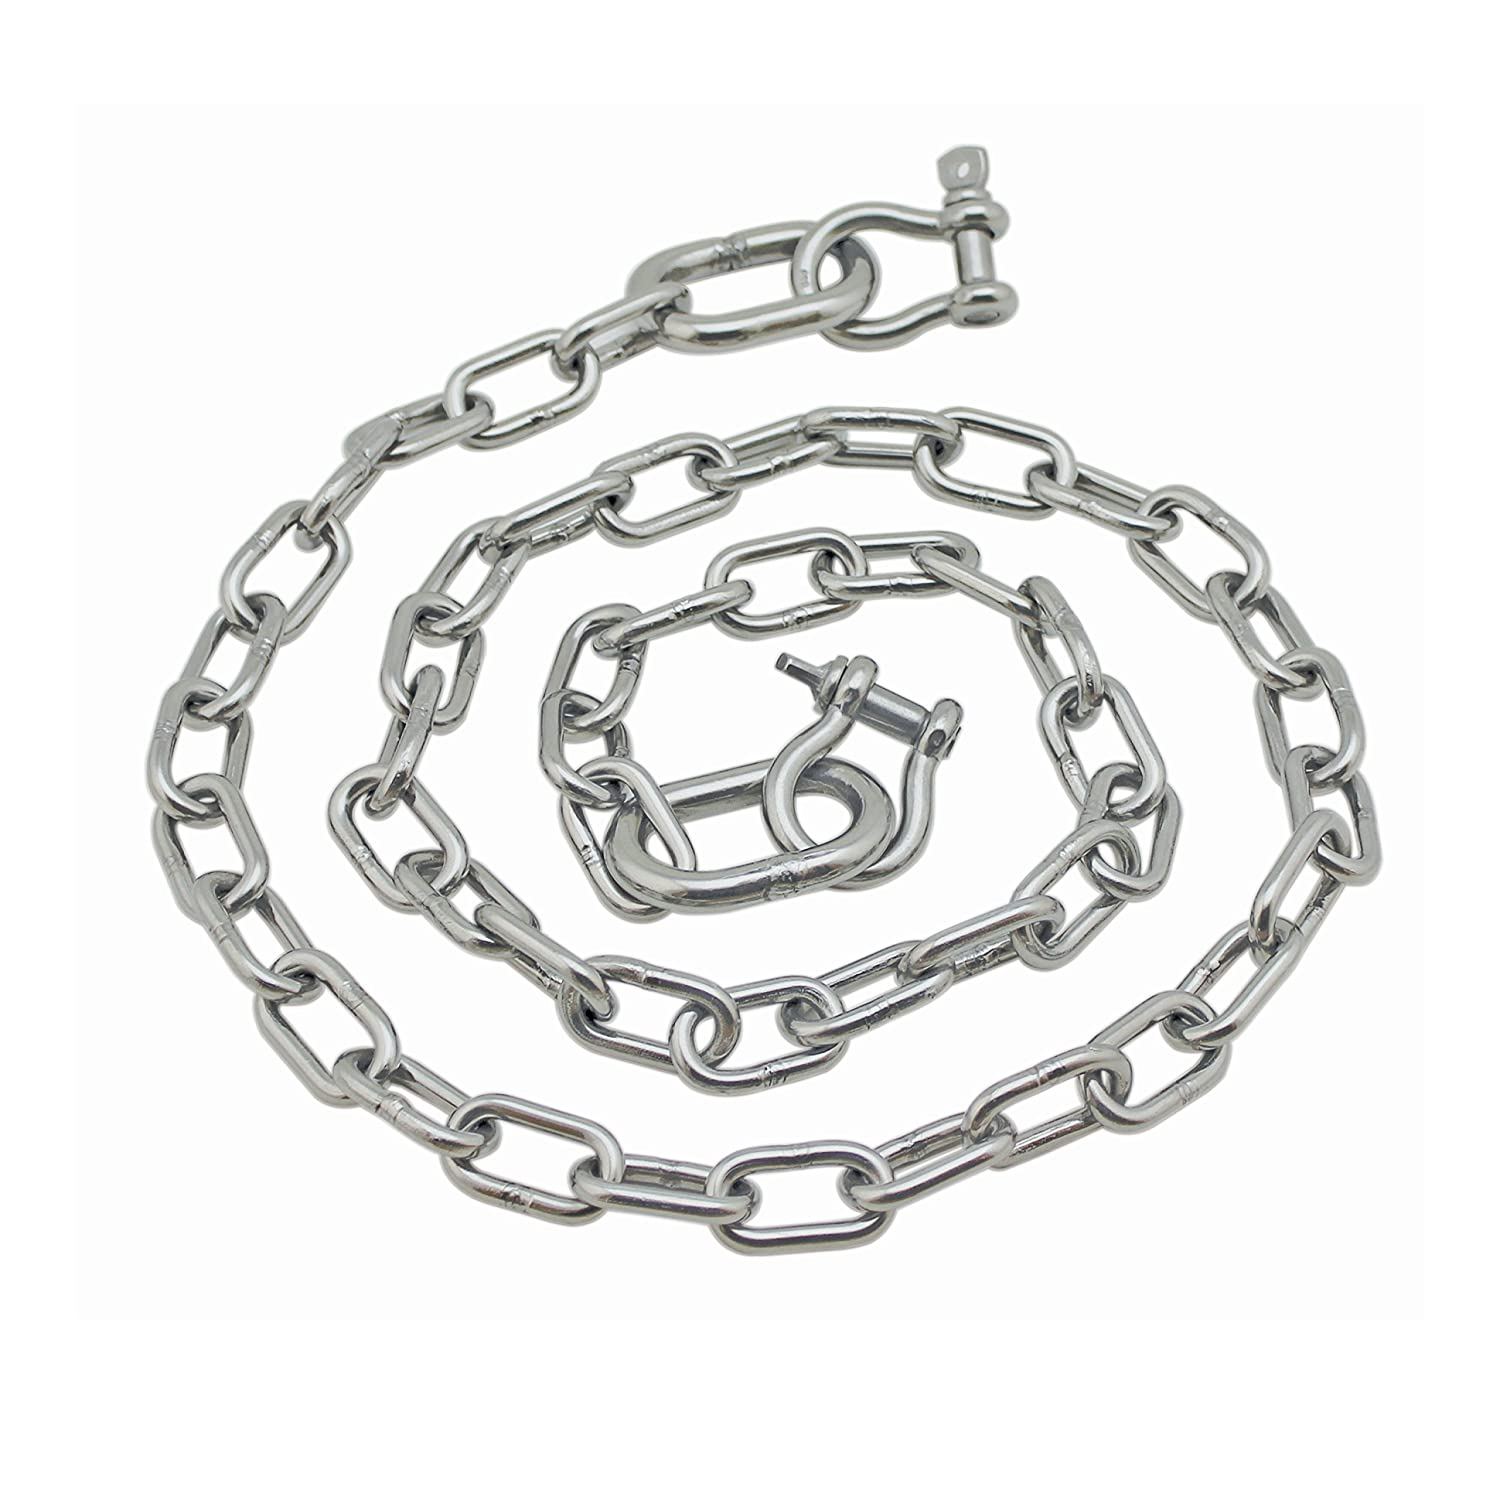 Extreme Max 3006.6581 BoatTector Anchor Chain - 5/16' x 5' Stainless Steel with 3/8' Shackles